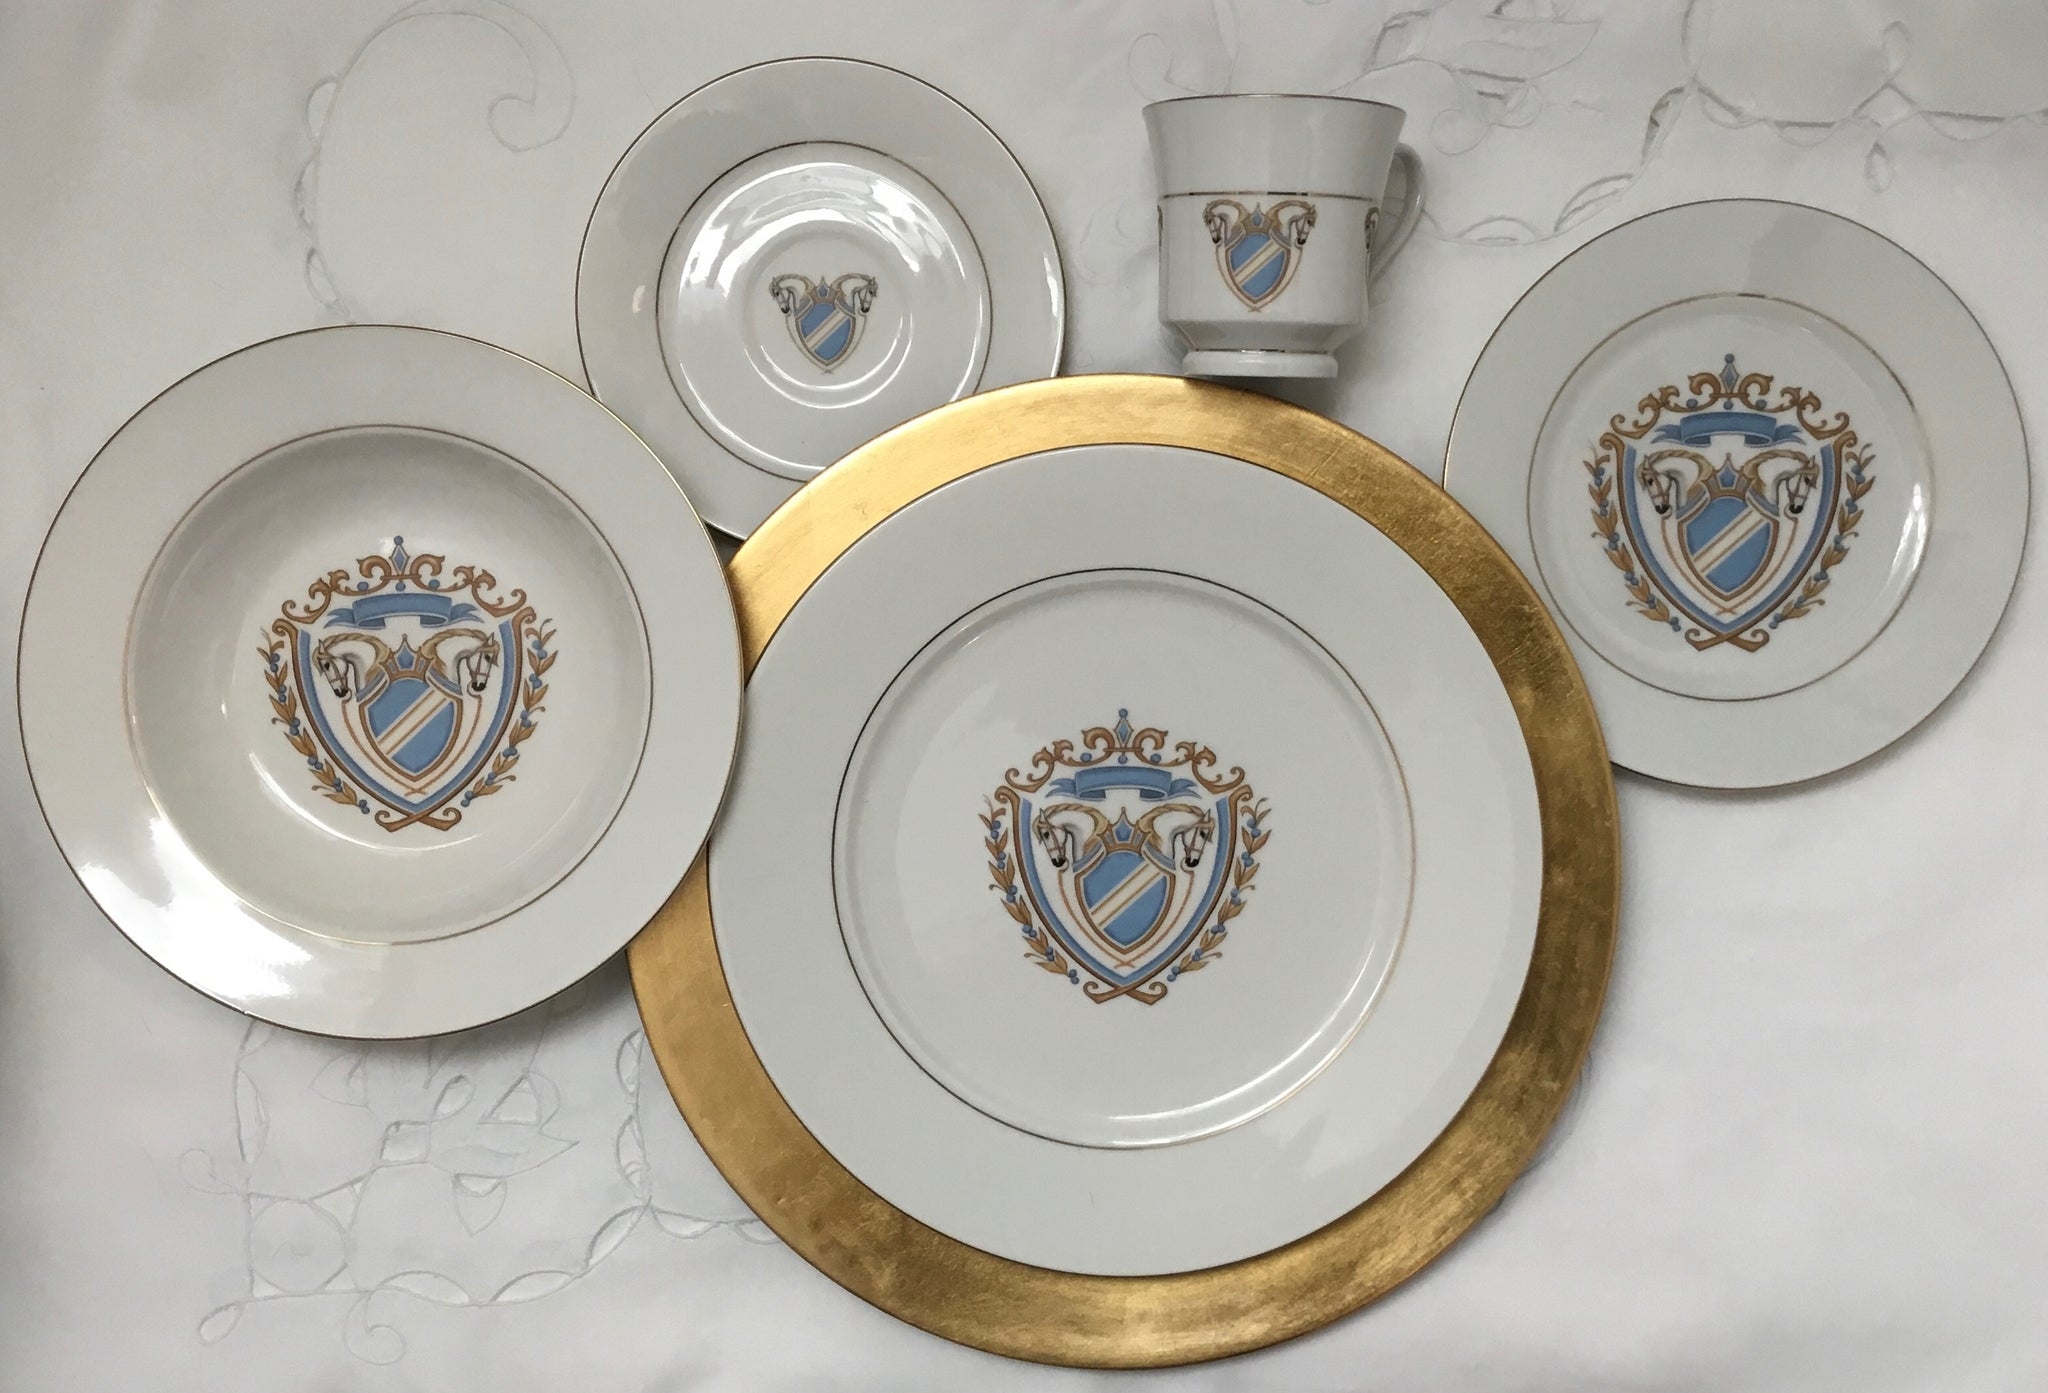 Horse coat of arms dinner plates in blue by Patricia Borum